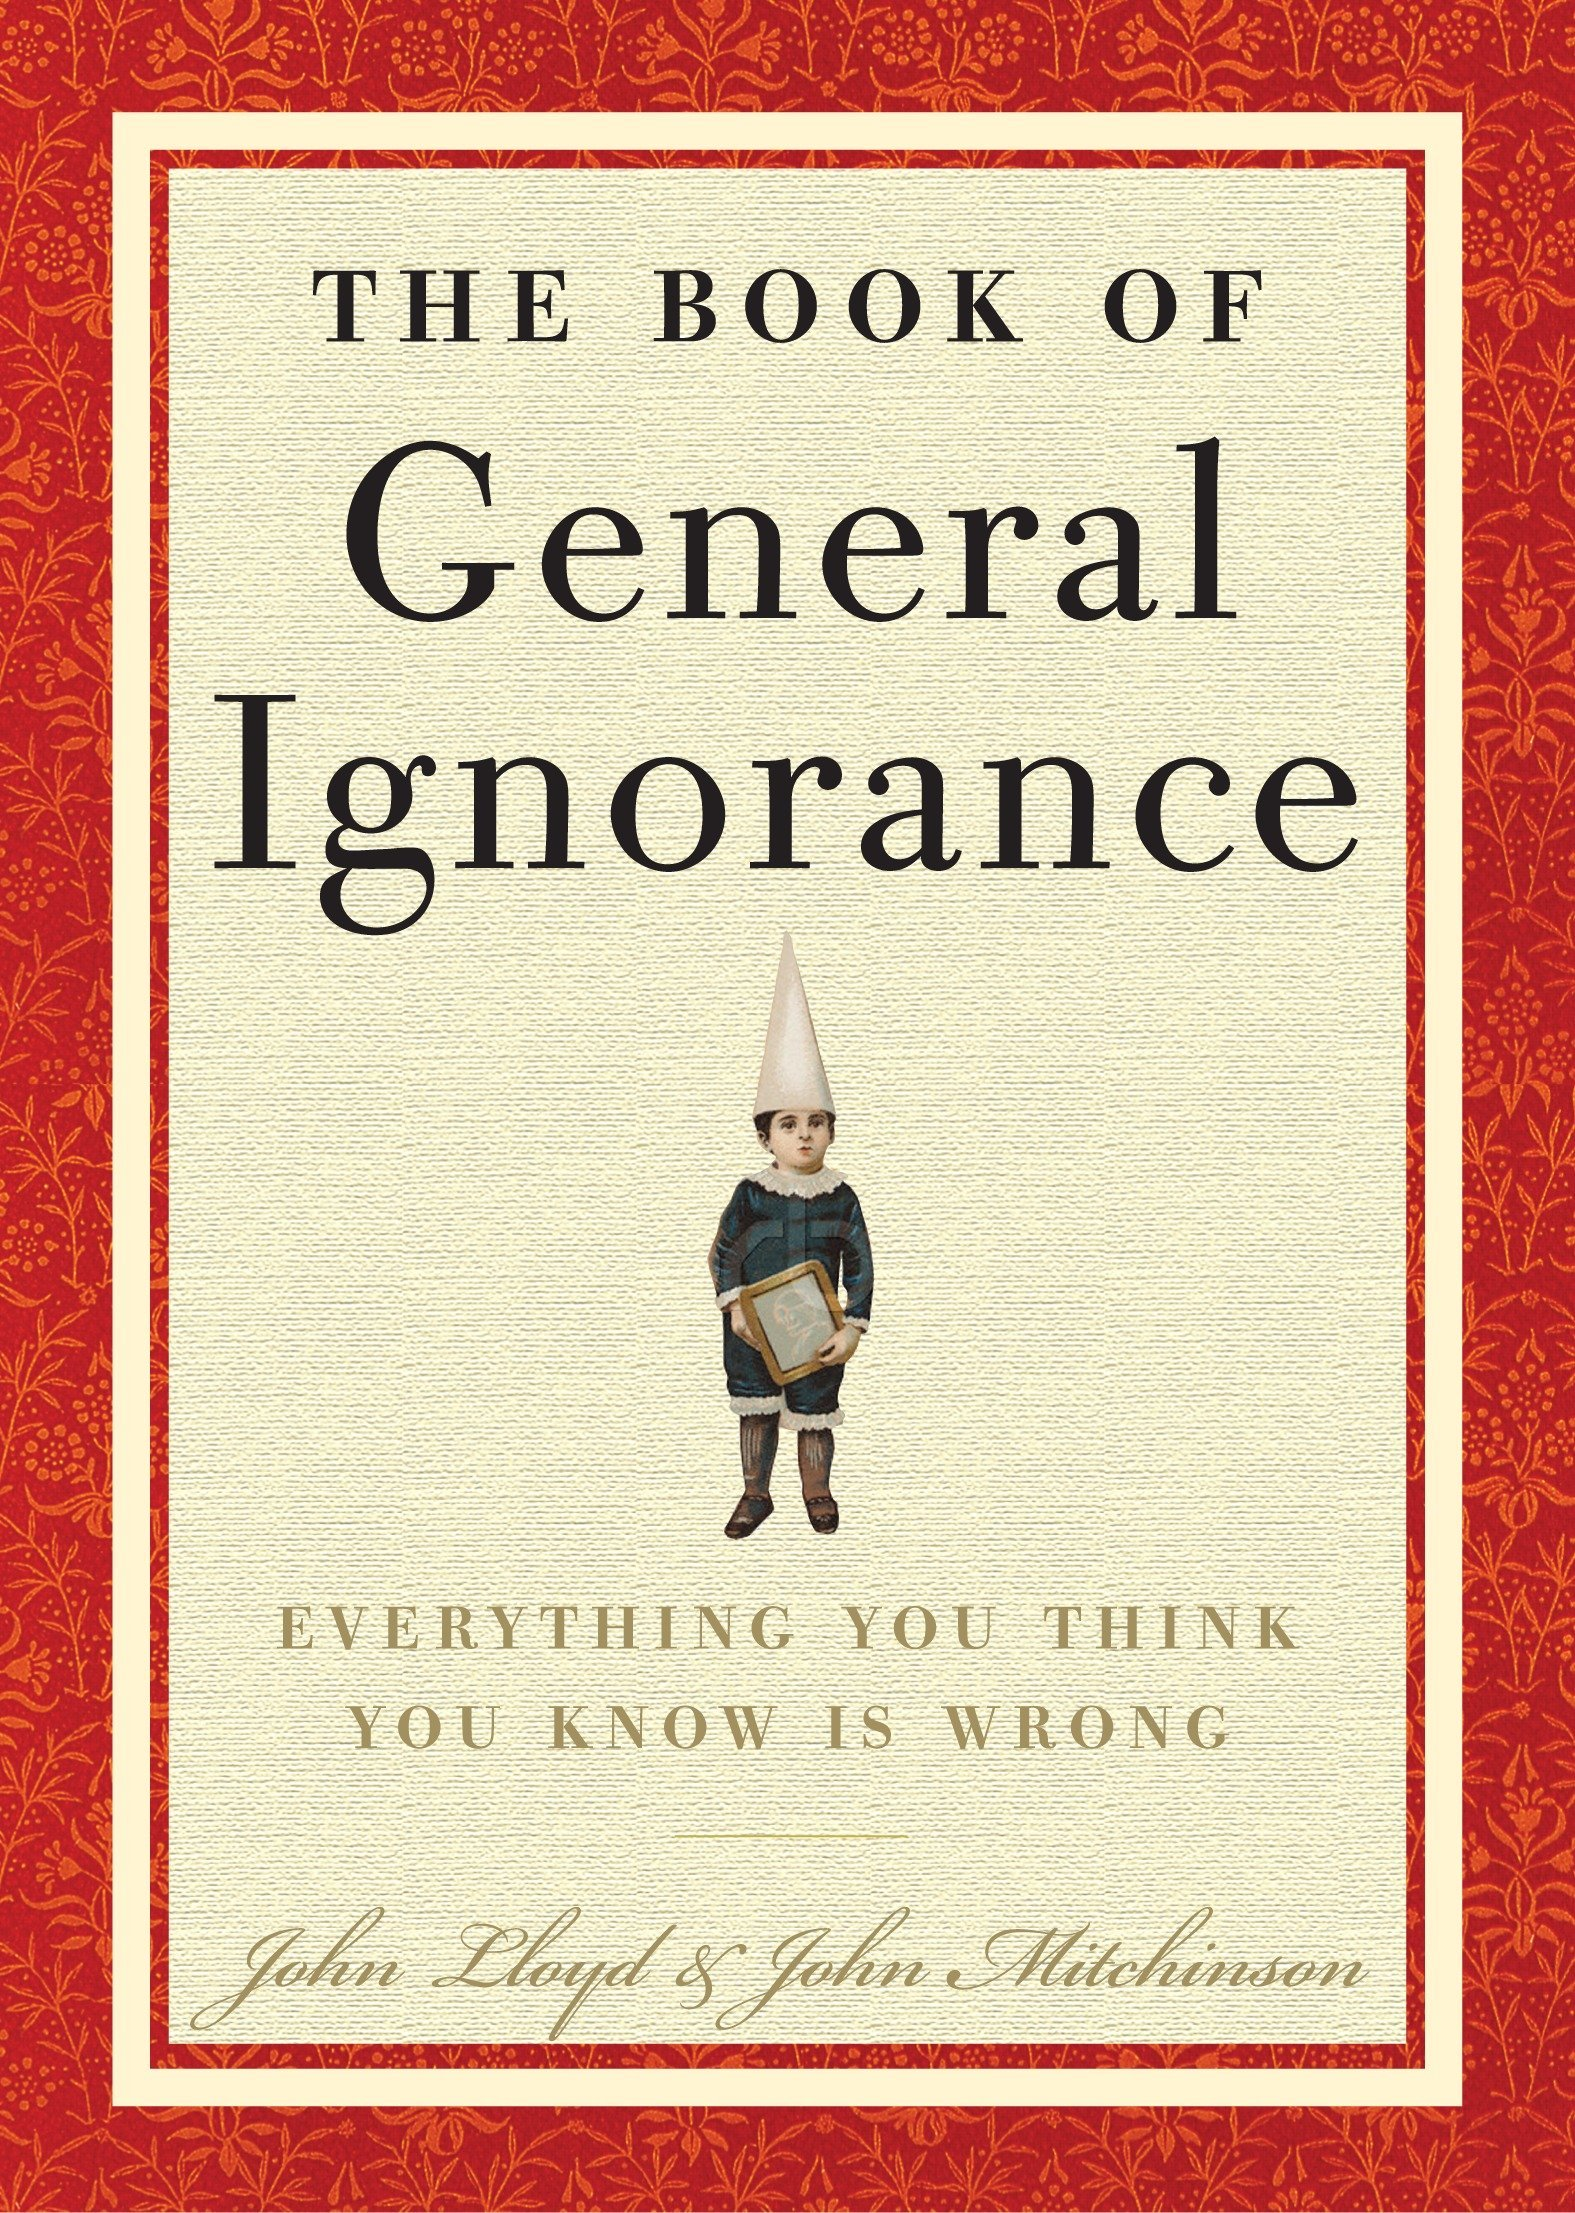 The Book of General Ignorance: John Mitchinson, John Lloyd: 9780307394910:  Amazon.com: Books